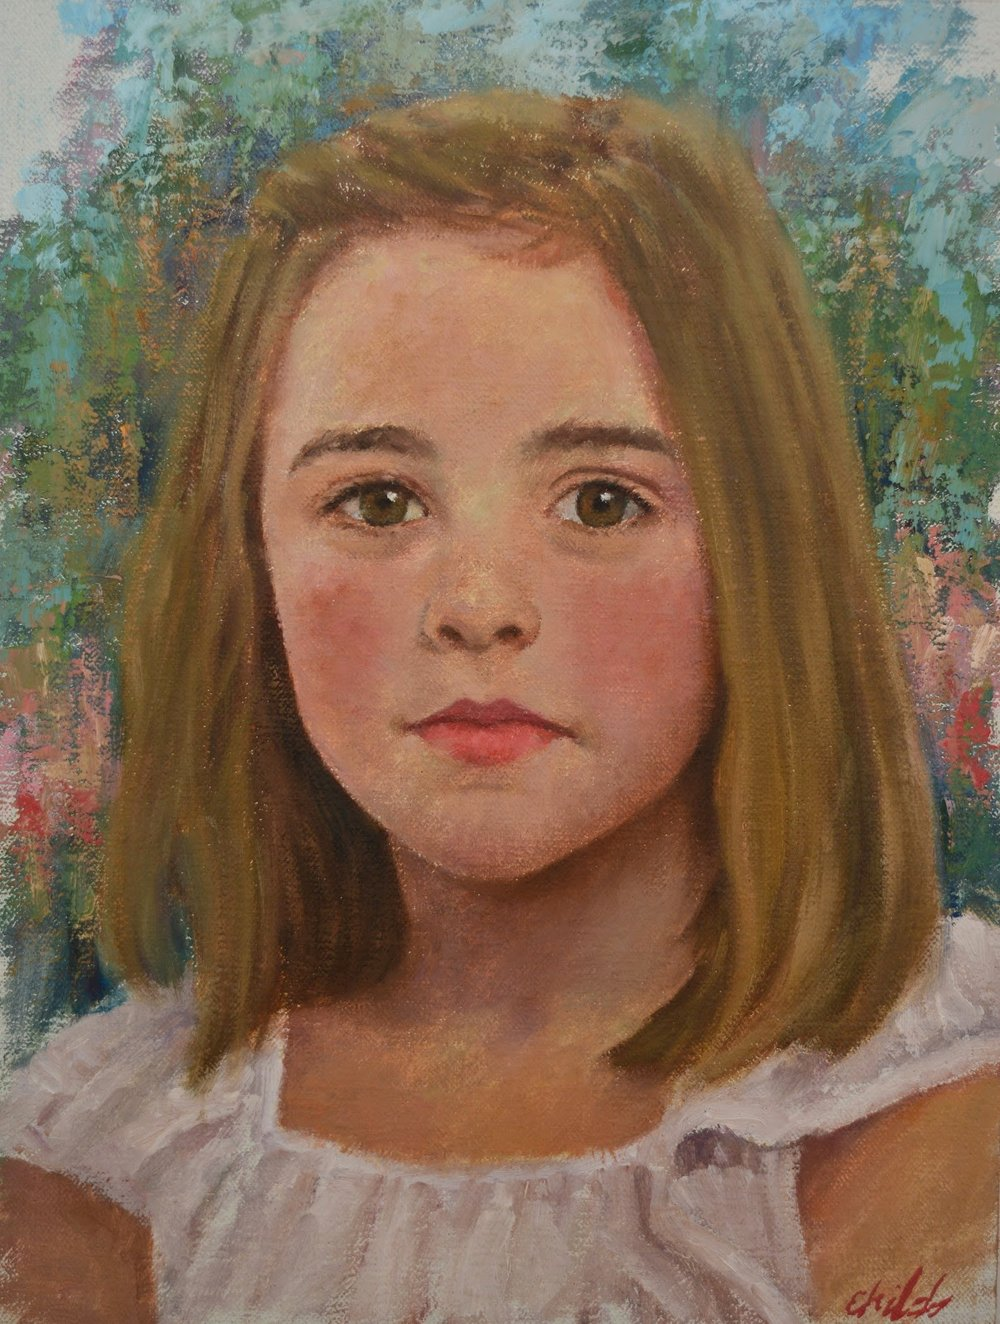 Girl with White Dress - 9x12